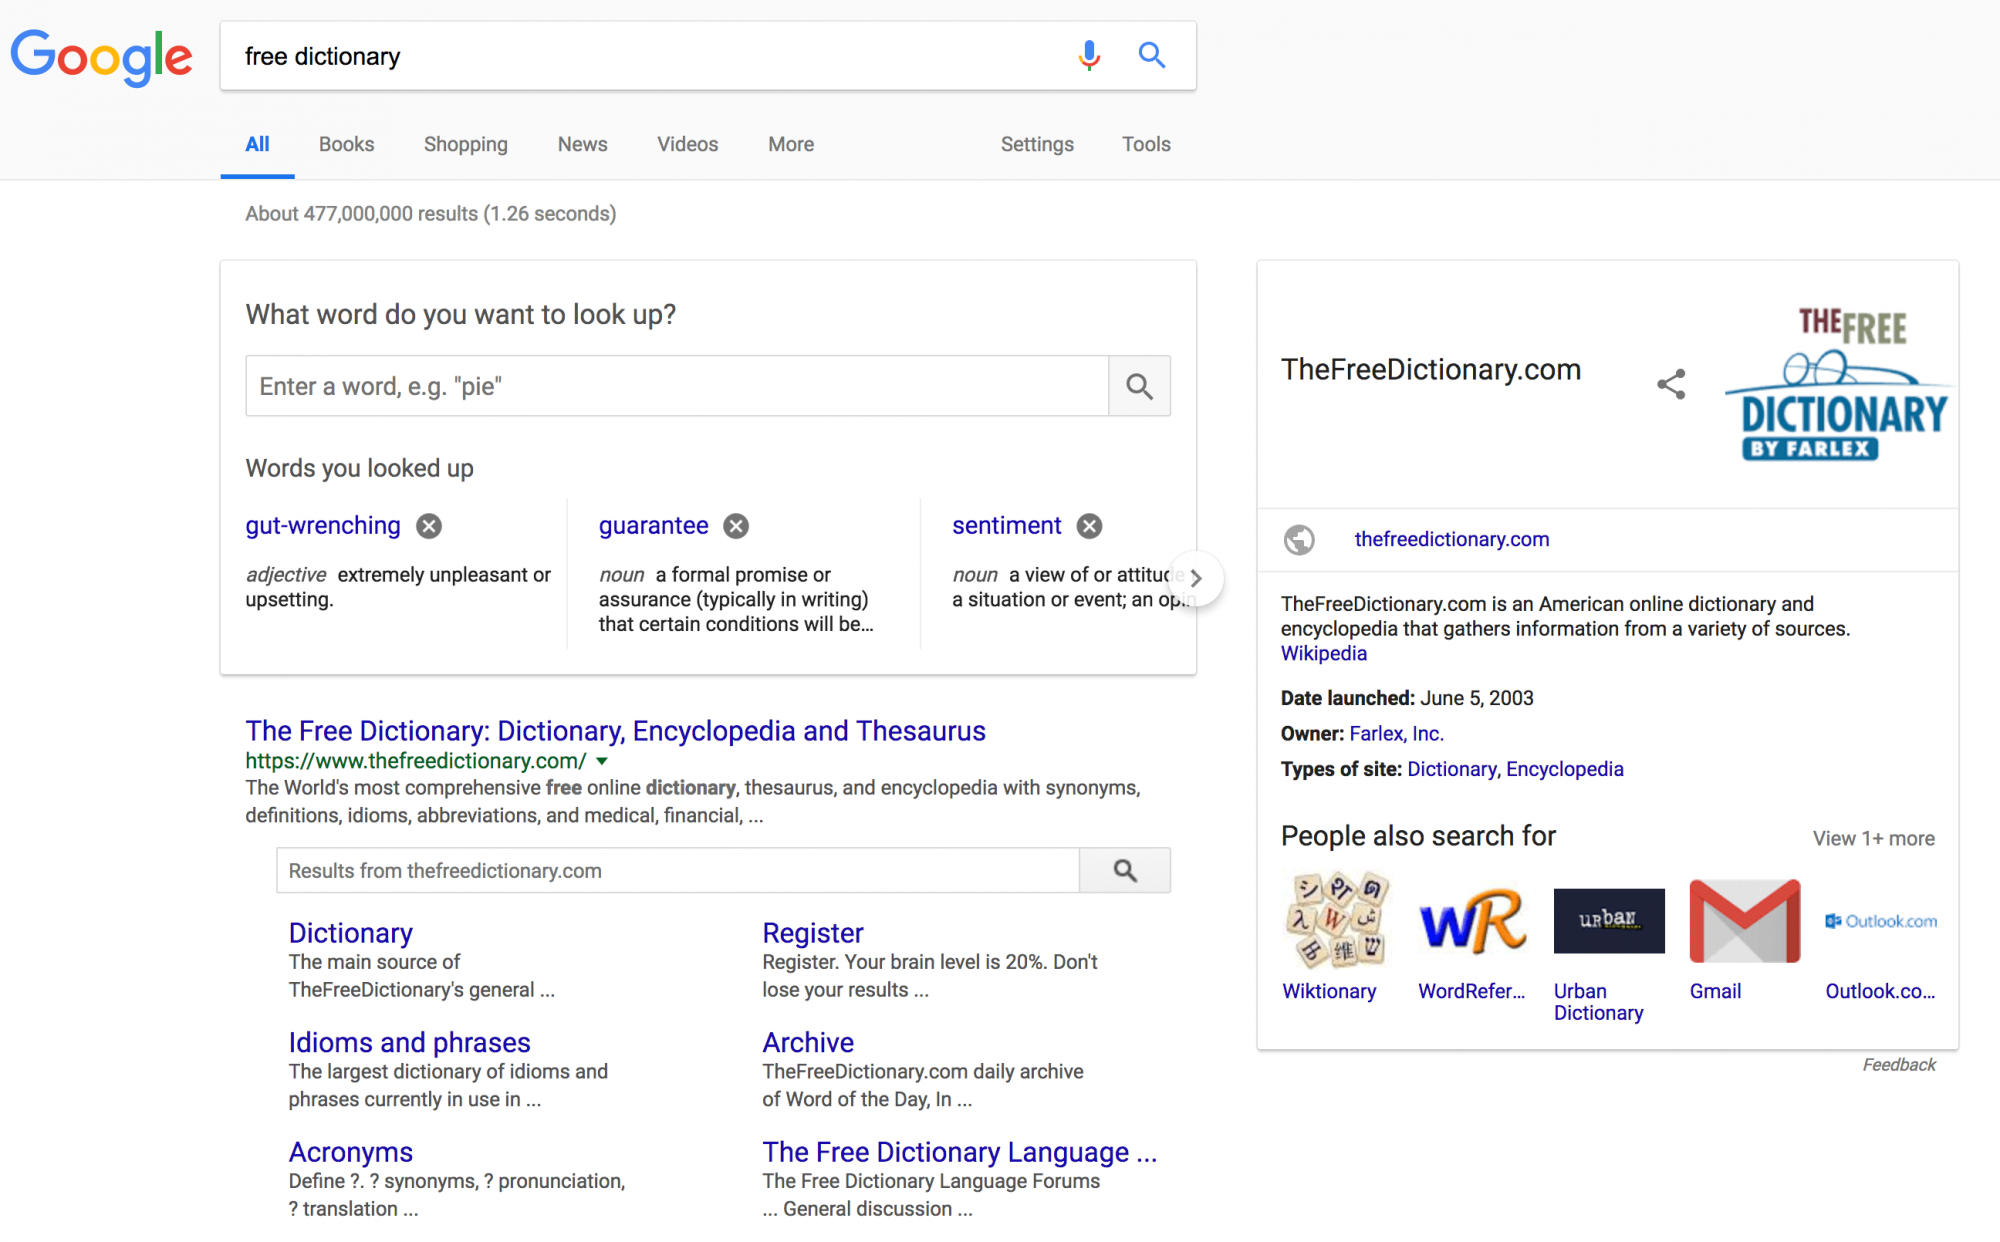 Google Shows Their Dictionary Widget For Branded Free Dictionary Search